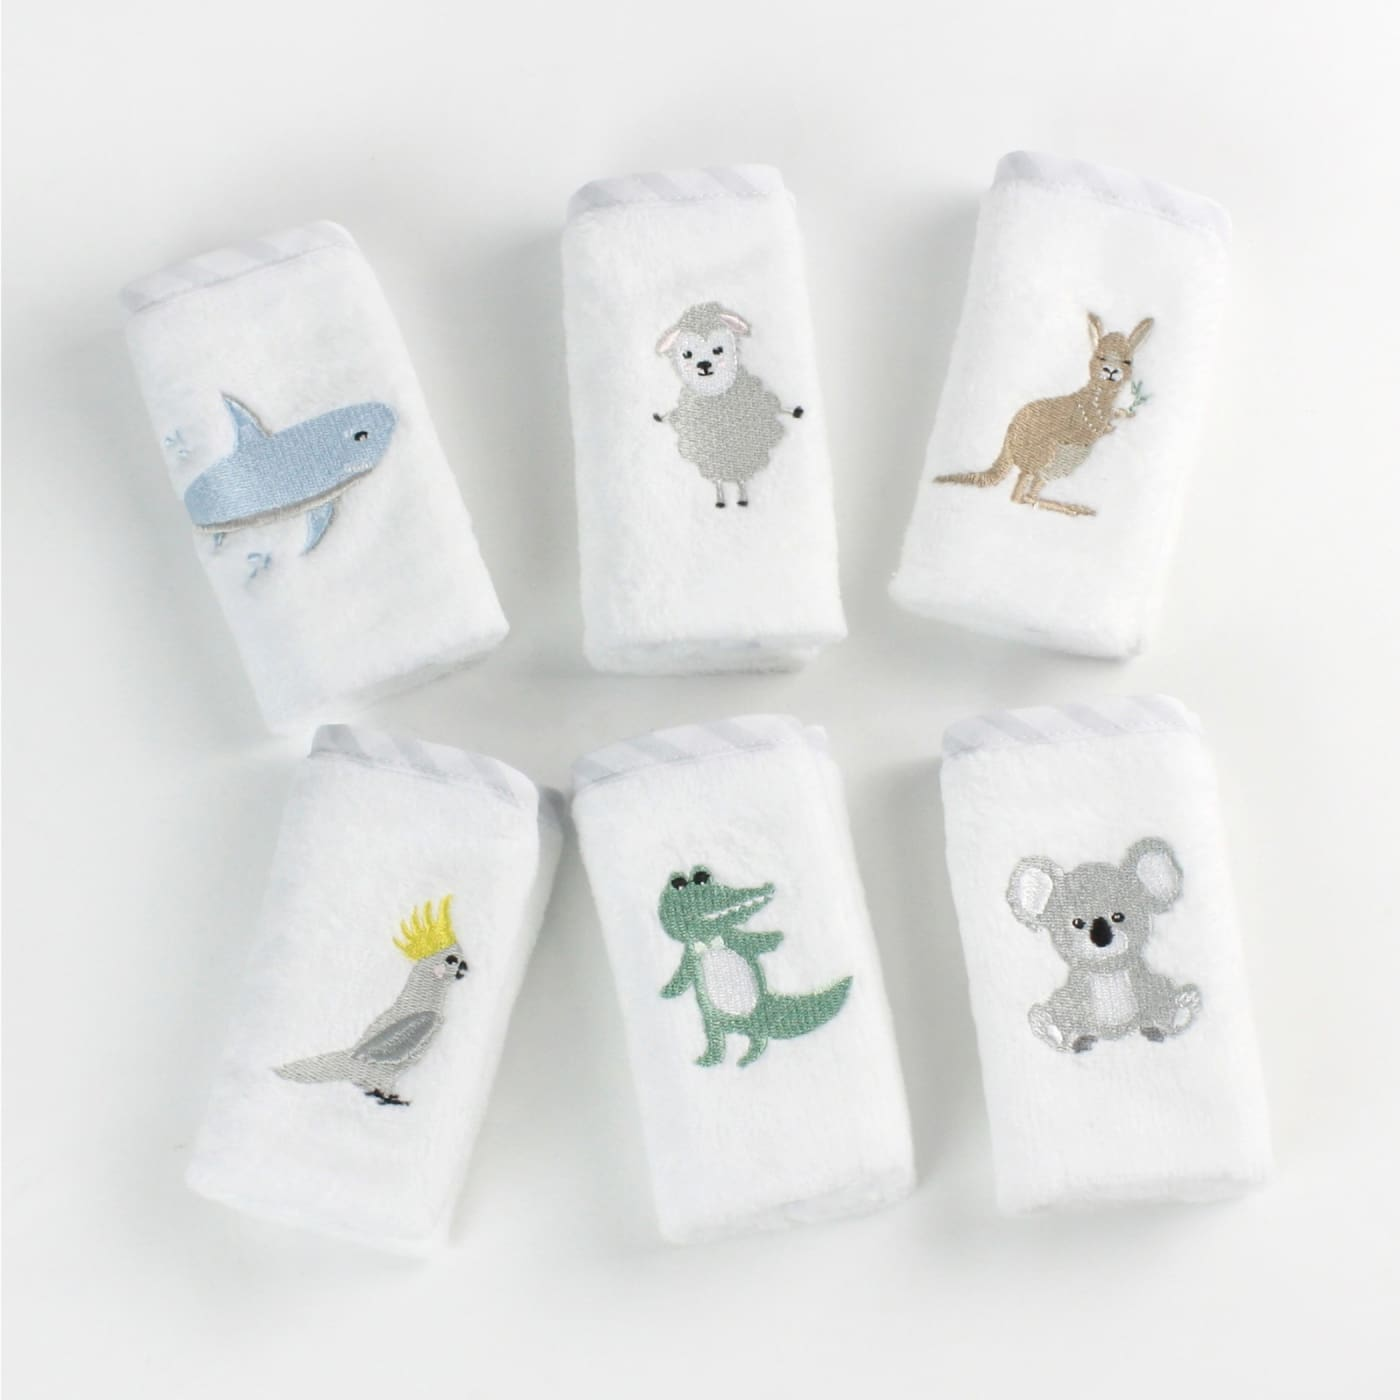 Bubba Blue Face Washer 6pc - Aussie Animal - Aussie Animal - BATHTIME & CHANGING - TOWELS/WASHERS